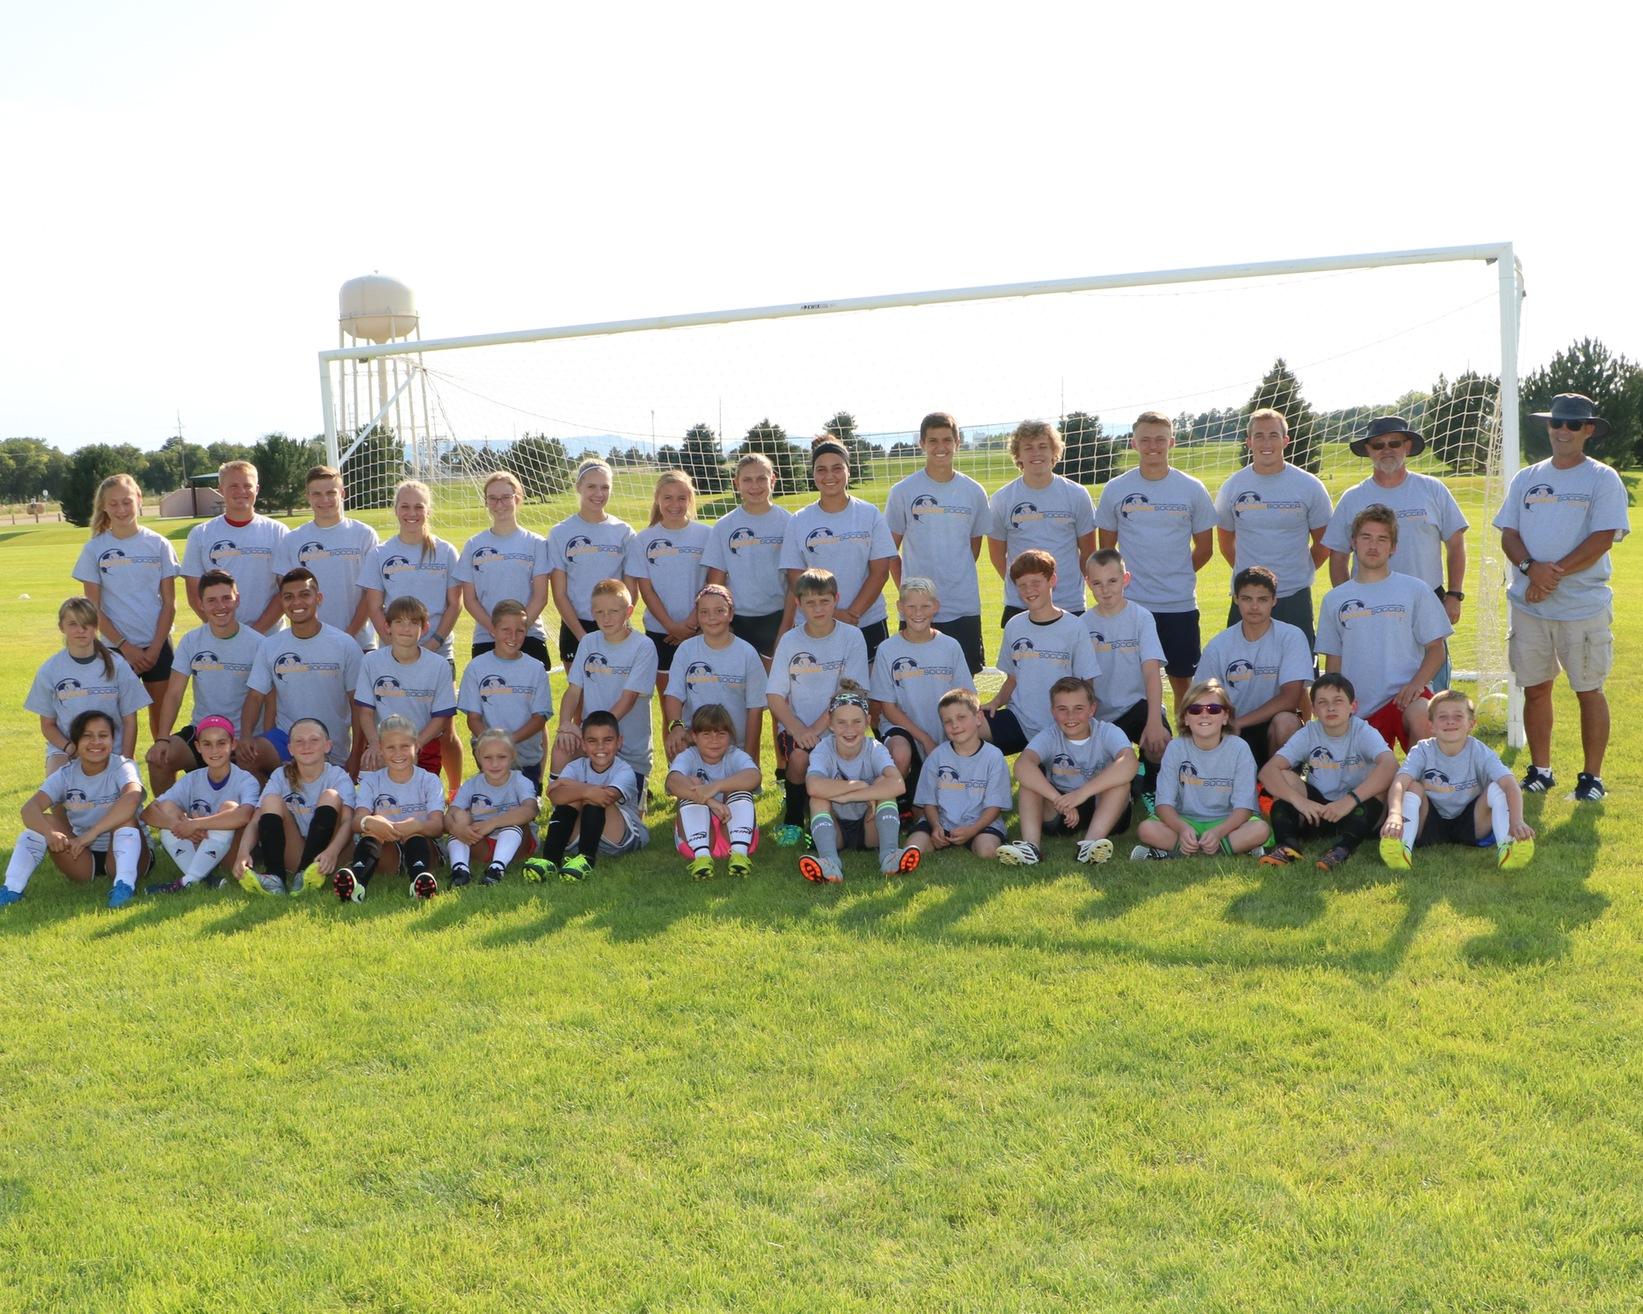 WNCC to hold soccer camps in July